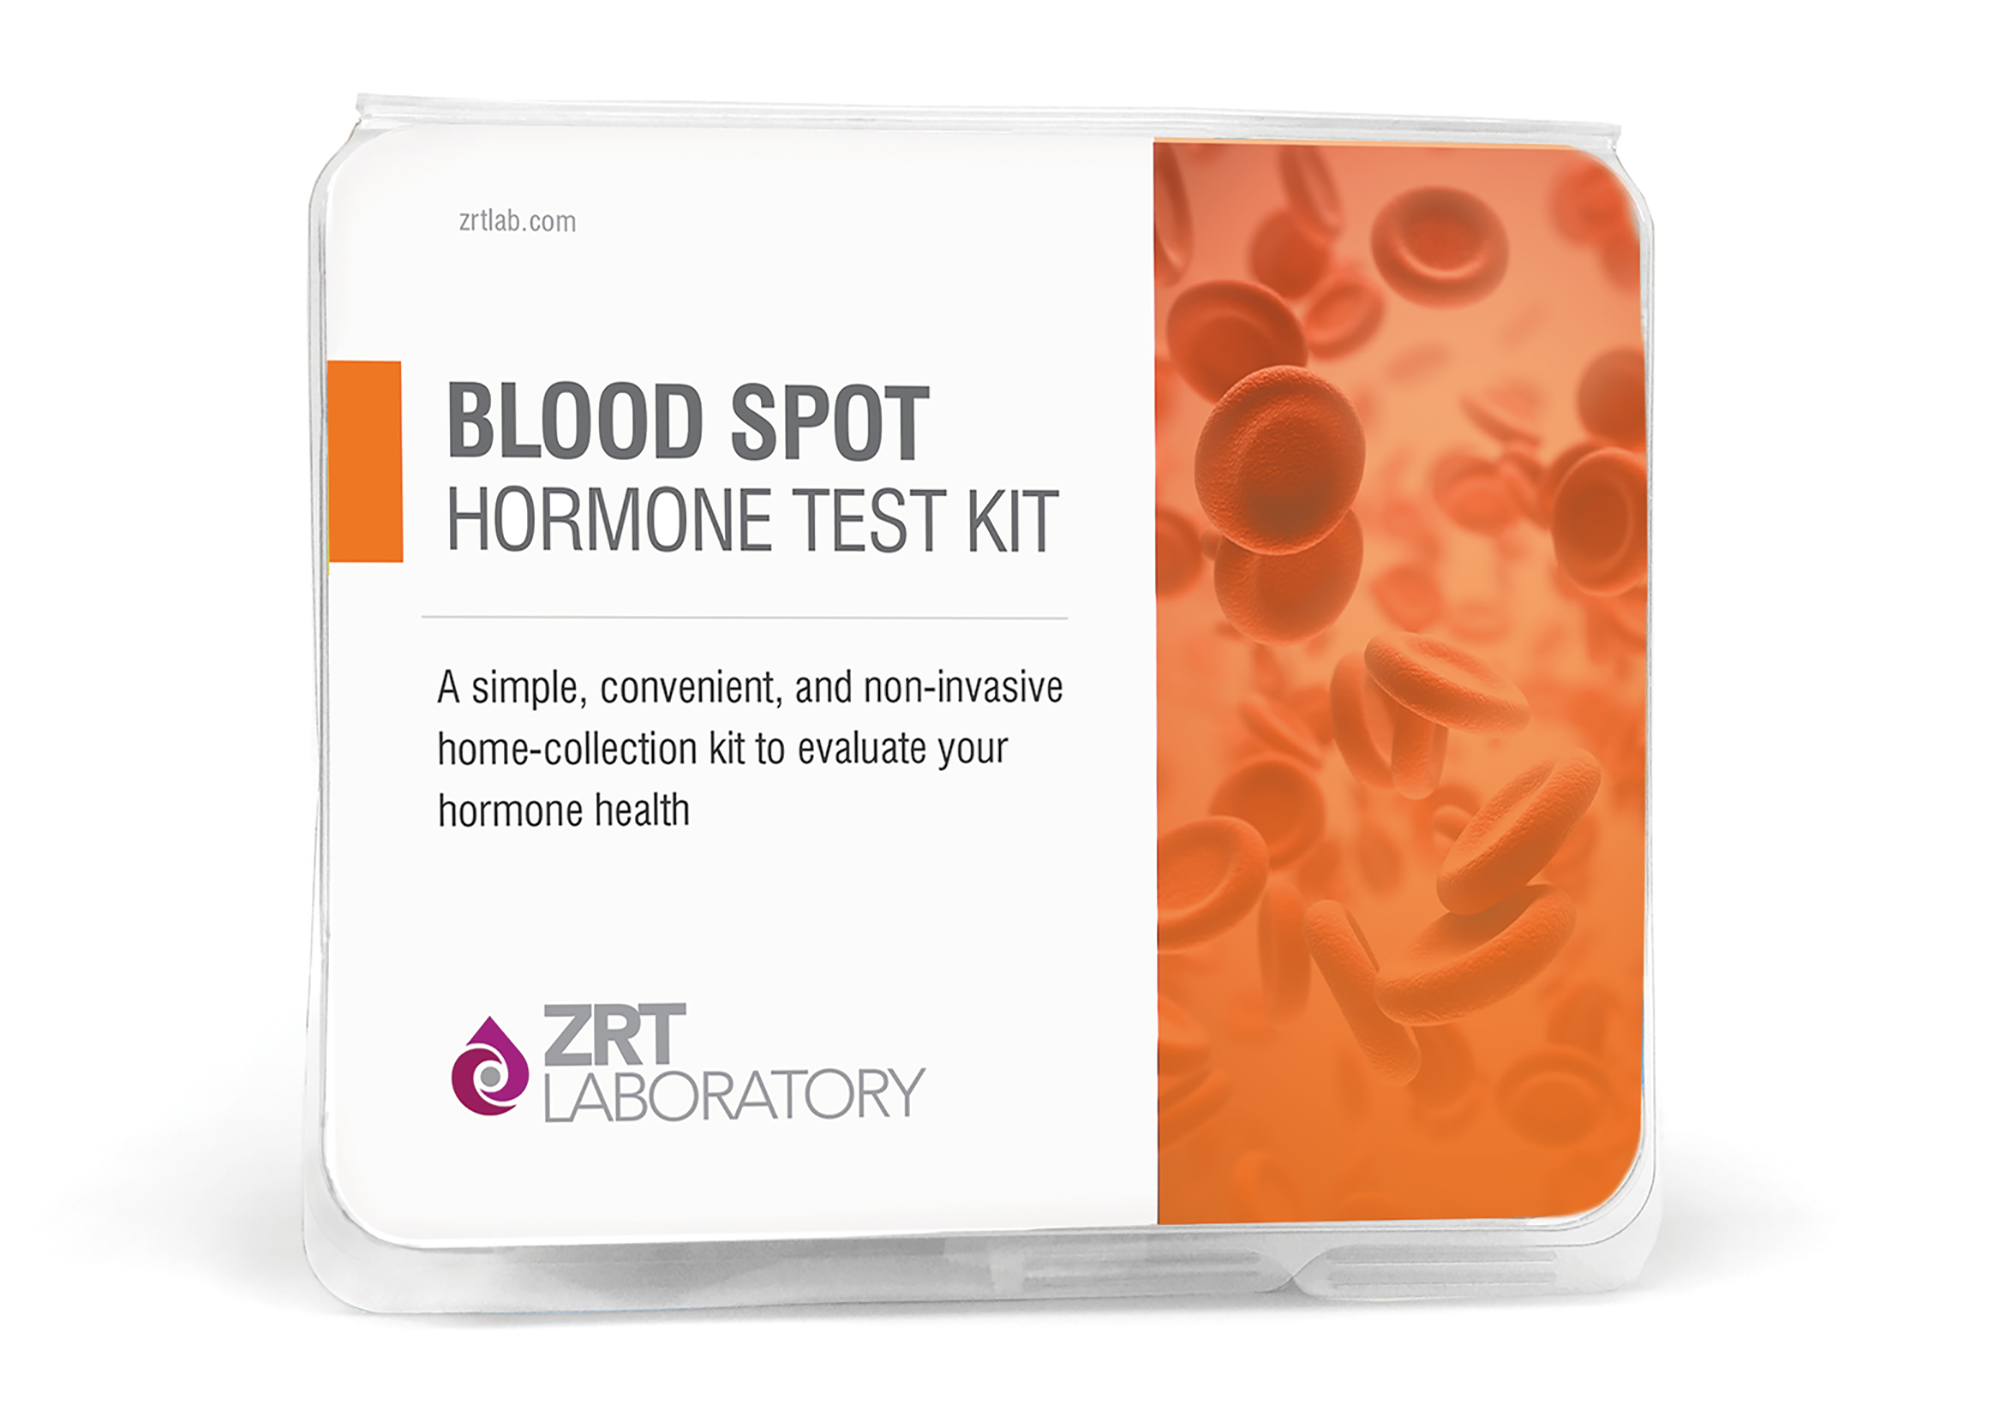 ZRT Laboratory Blood Spot Hormone Test Kit